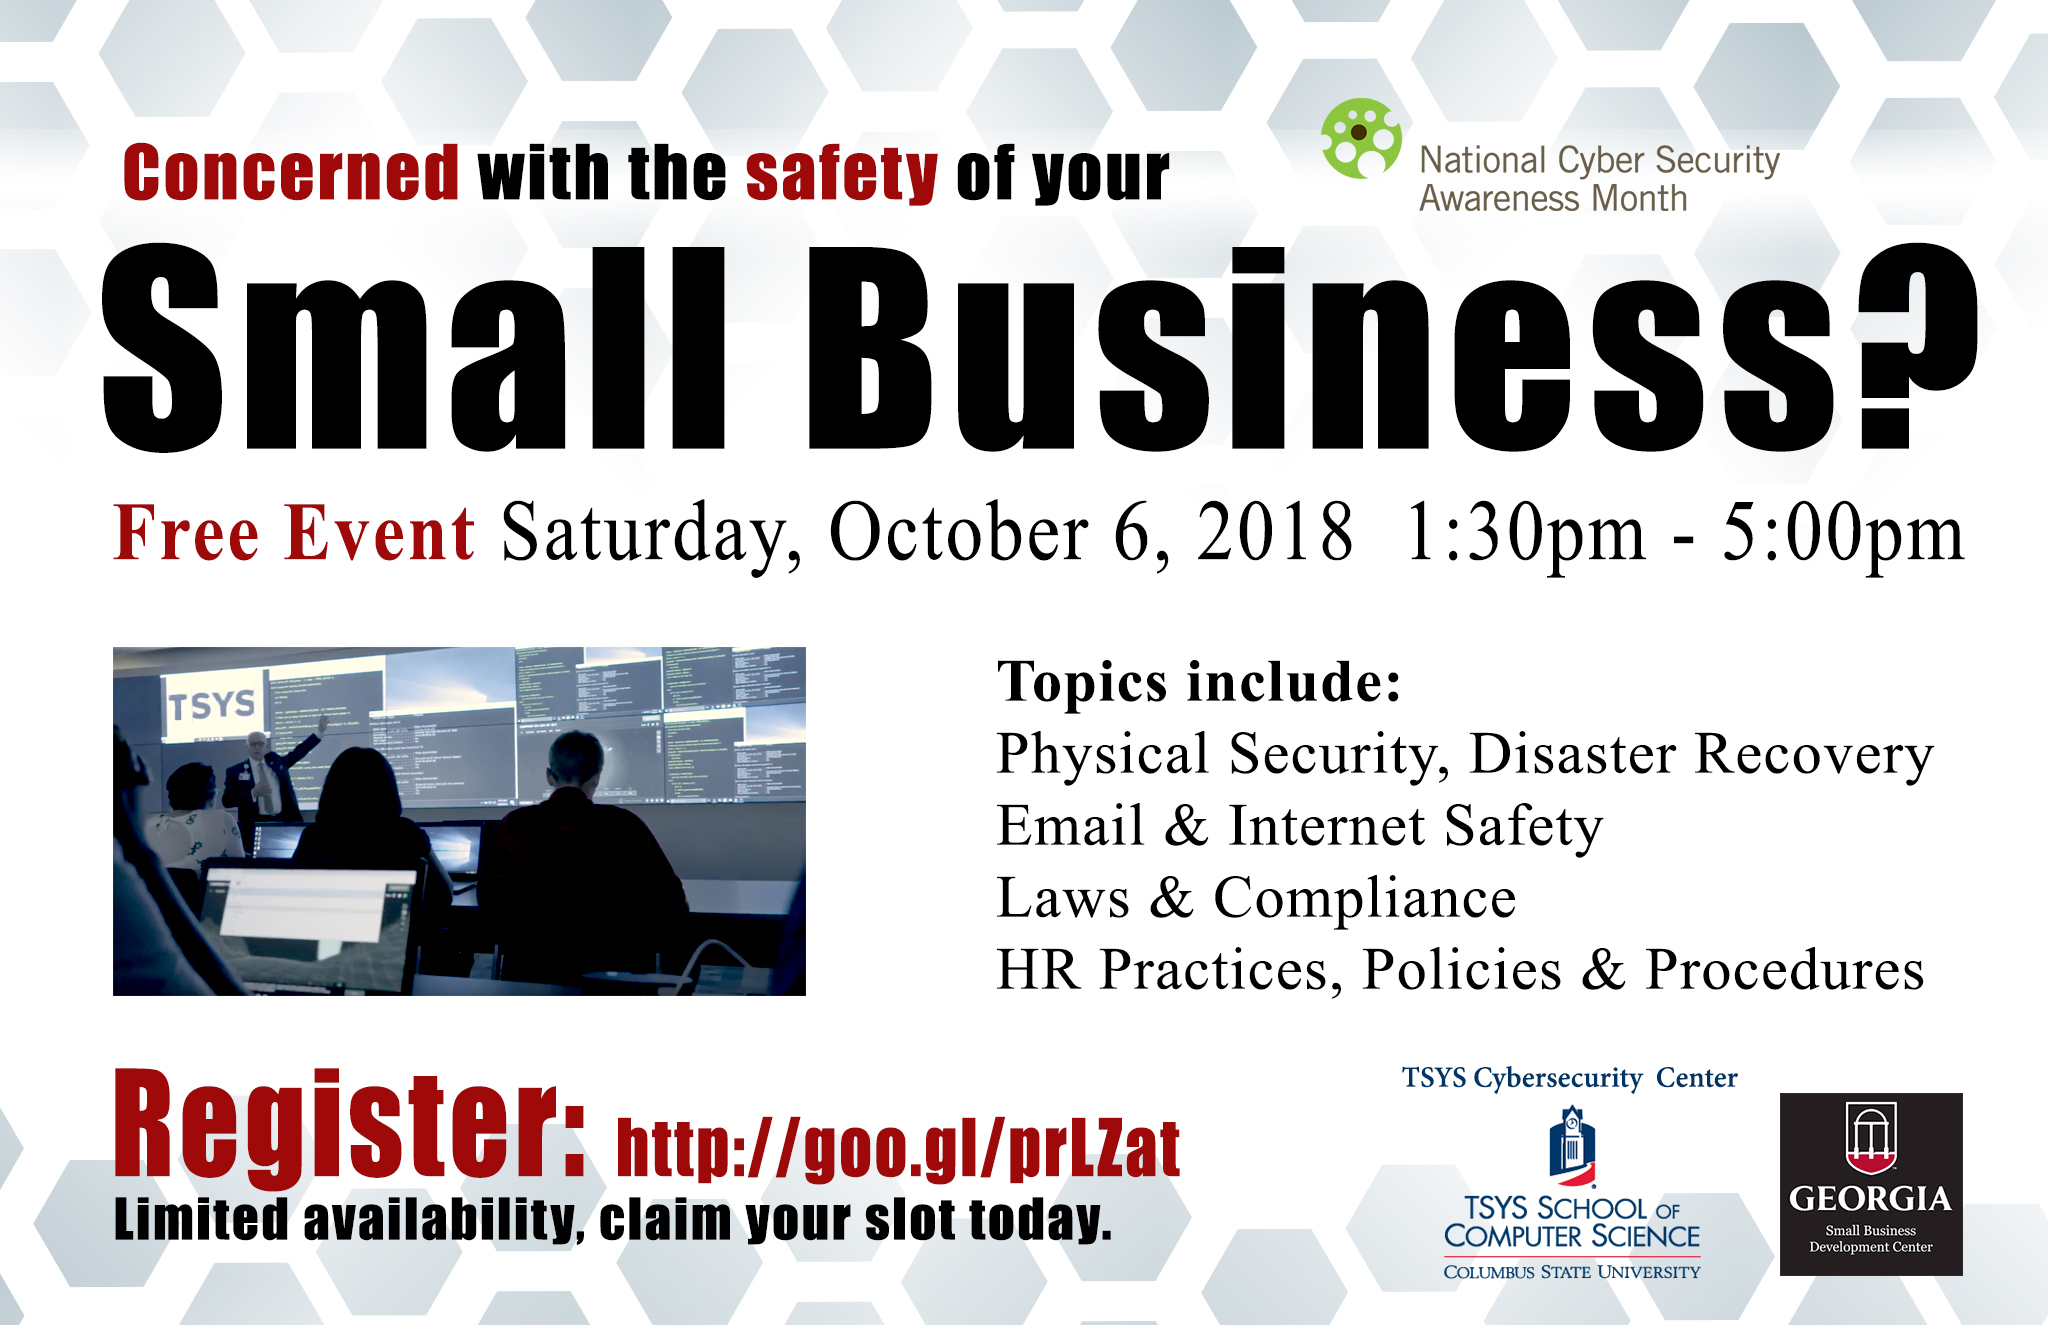 TSYS Cybersecurity Center Presents: Cyber Savvy Small Business